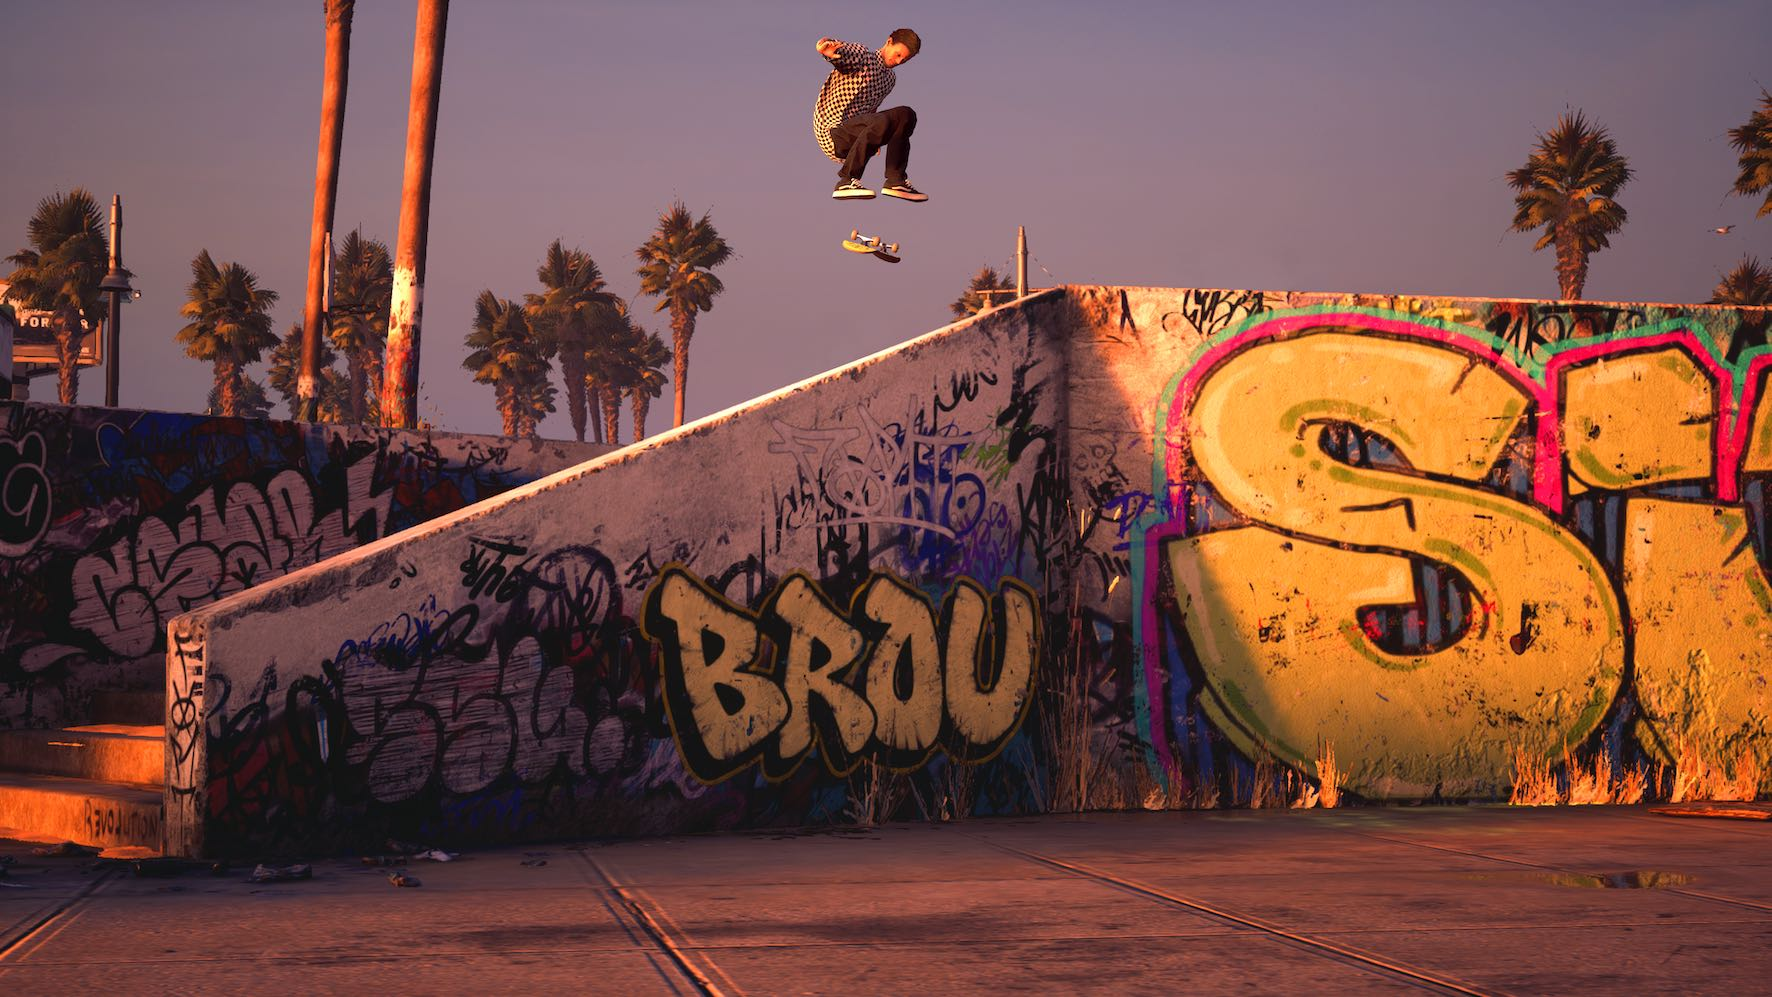 We review the remake of Tony Hawk's Pro Skate 1 and 2 games